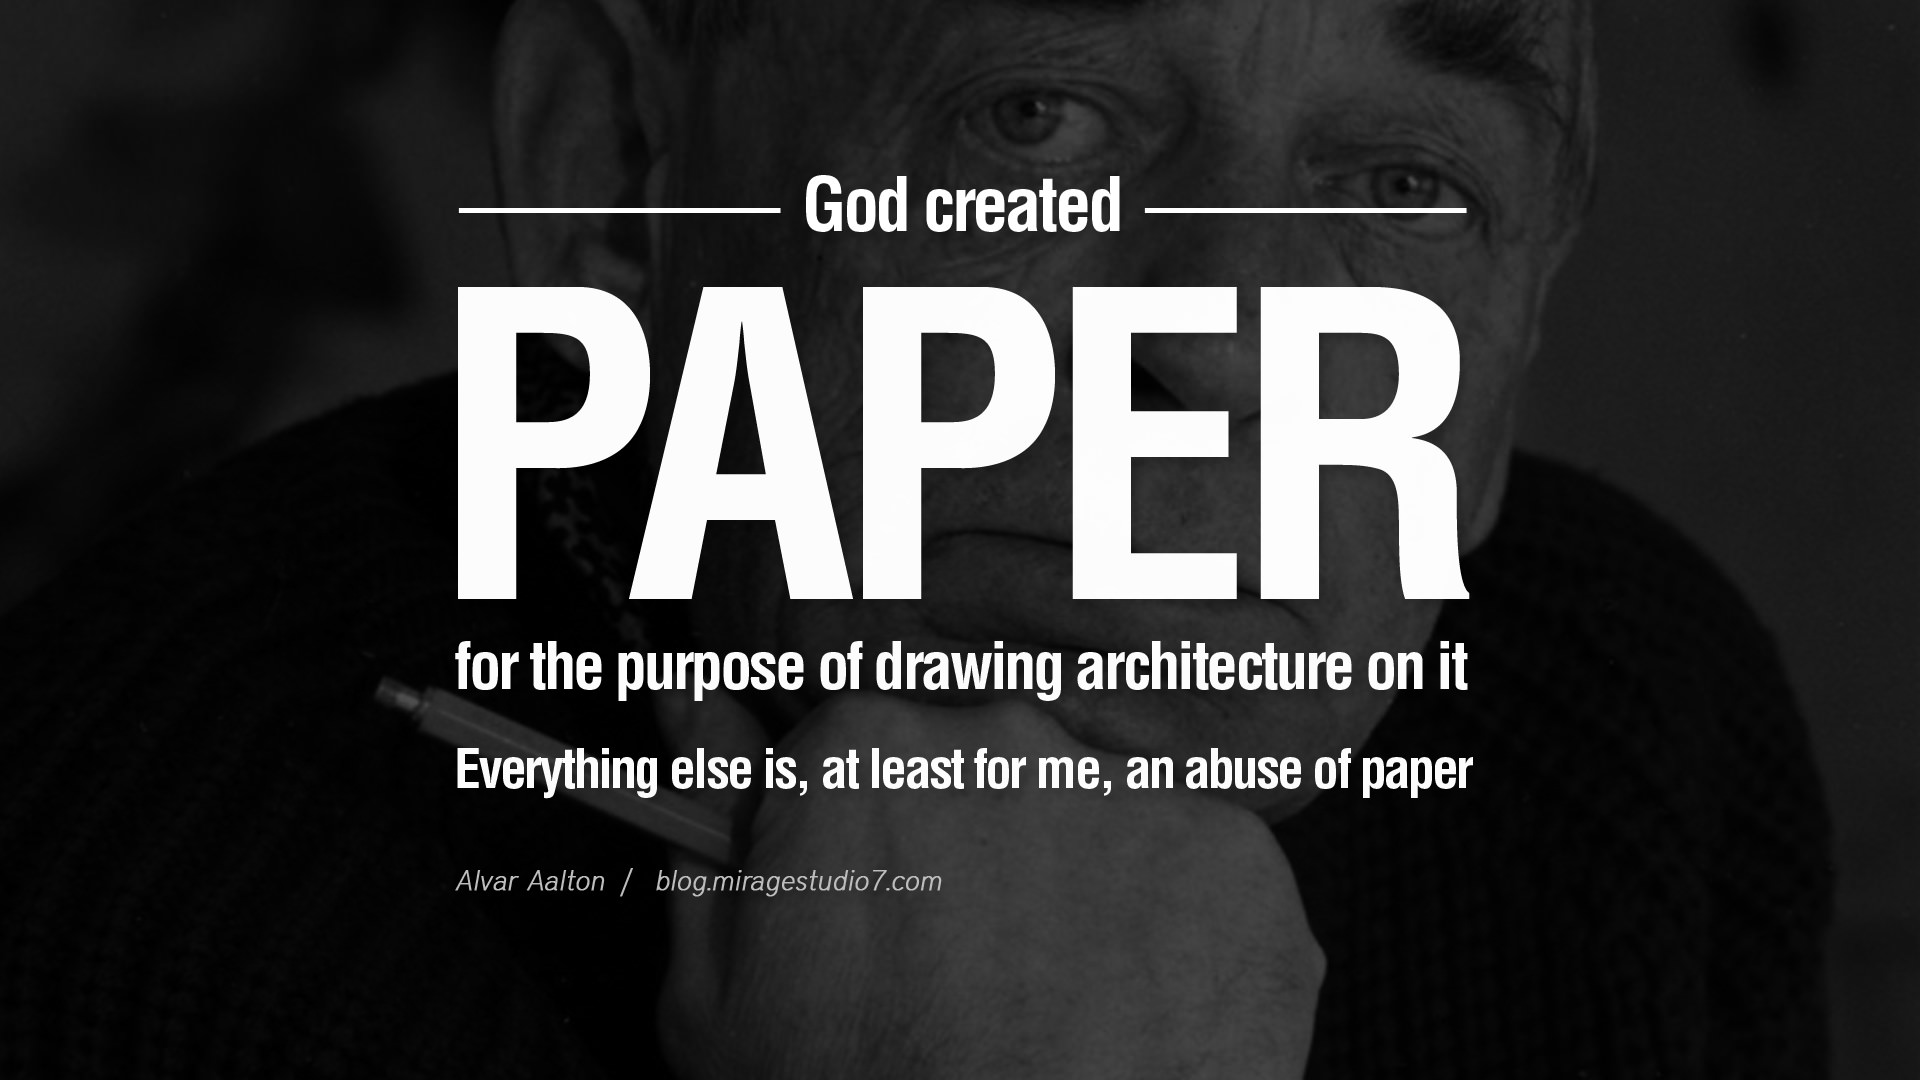 quotes architecture famous architect architects paper sketch drawing alvar aalto god purpose least created buildings everything frank inspirational abuse else